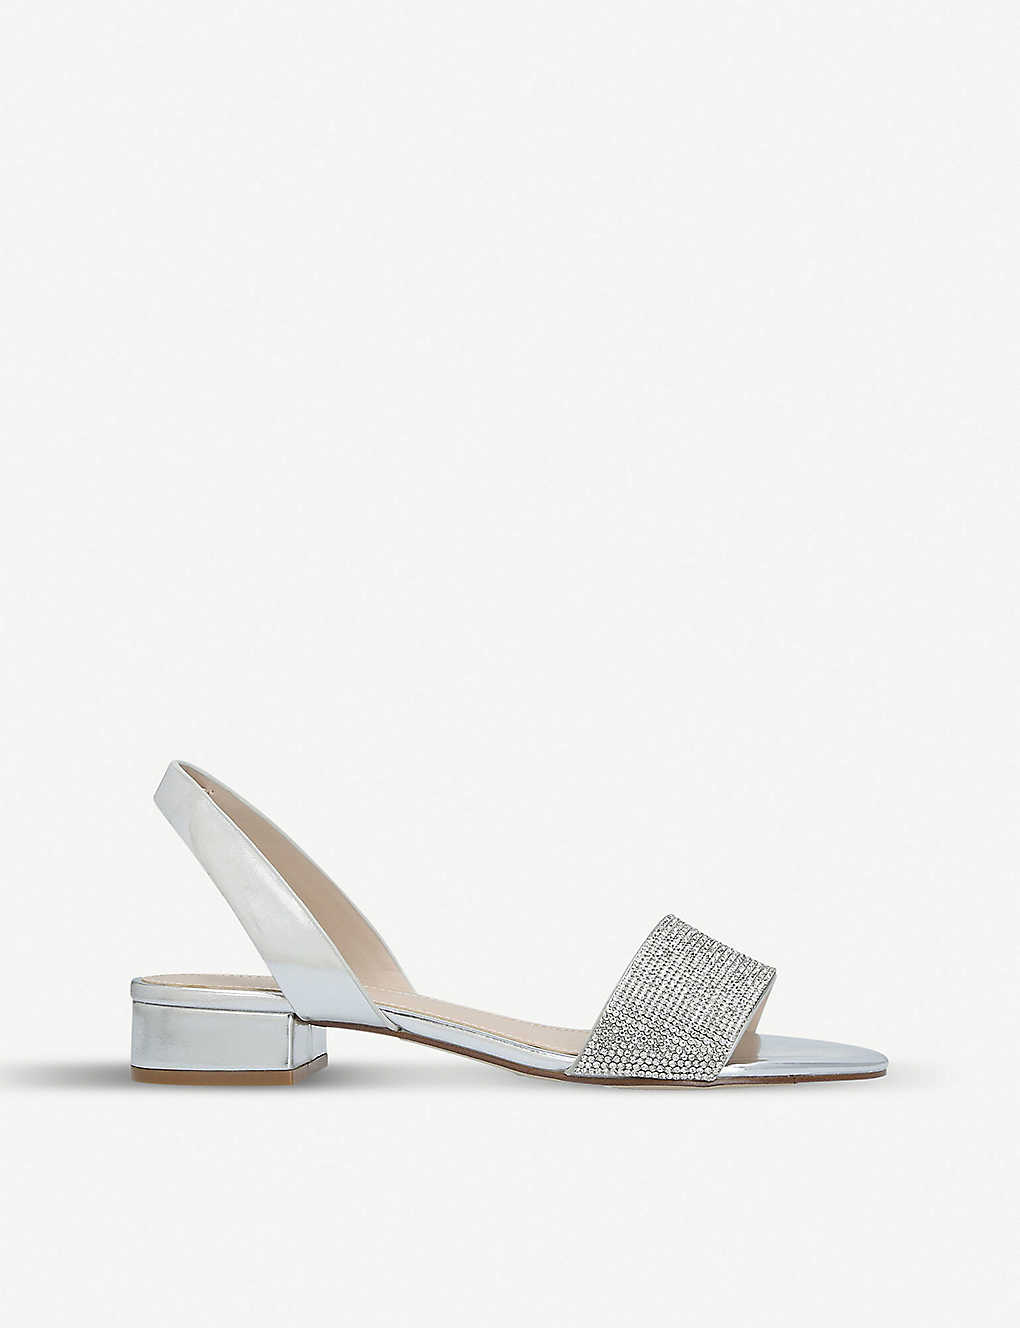 28d75c88cf5 Candice metallic faux-leather embellished sandals - Silver ...